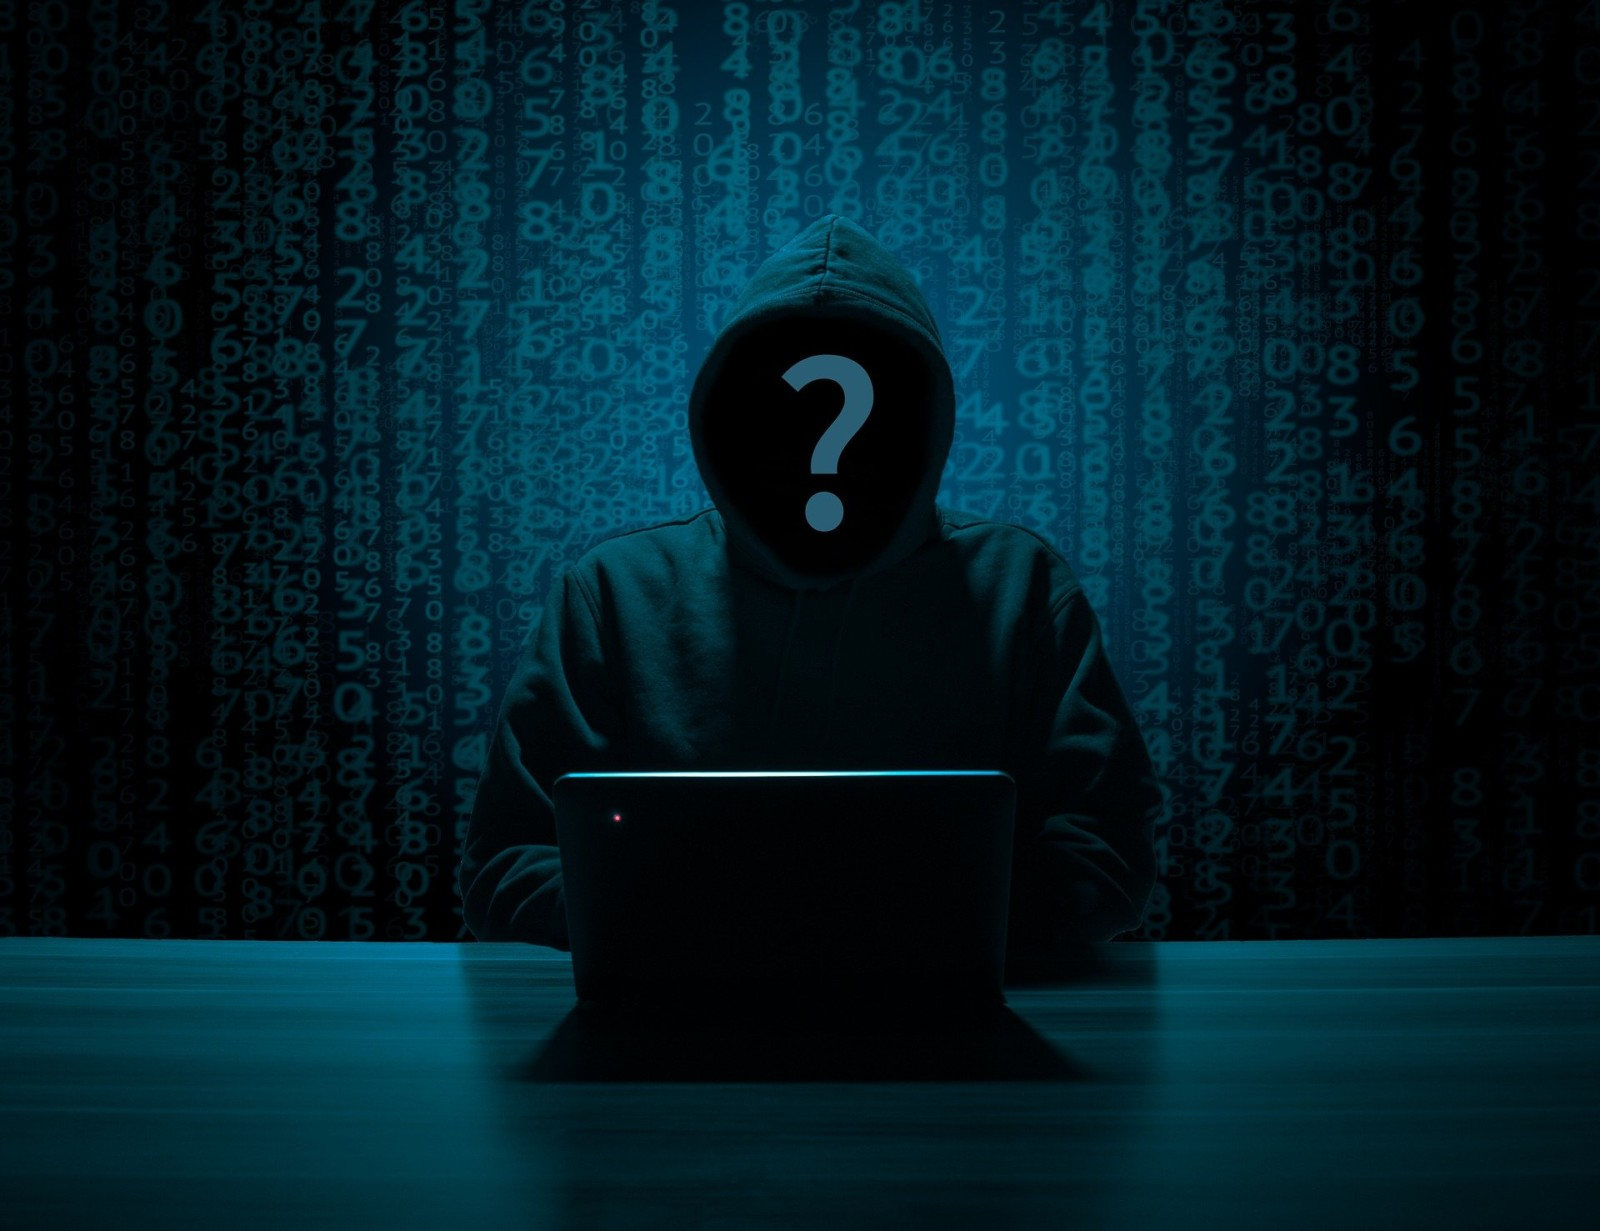 An image of someone wearing a black hoodie behind a laptop, with a question mark over their face.